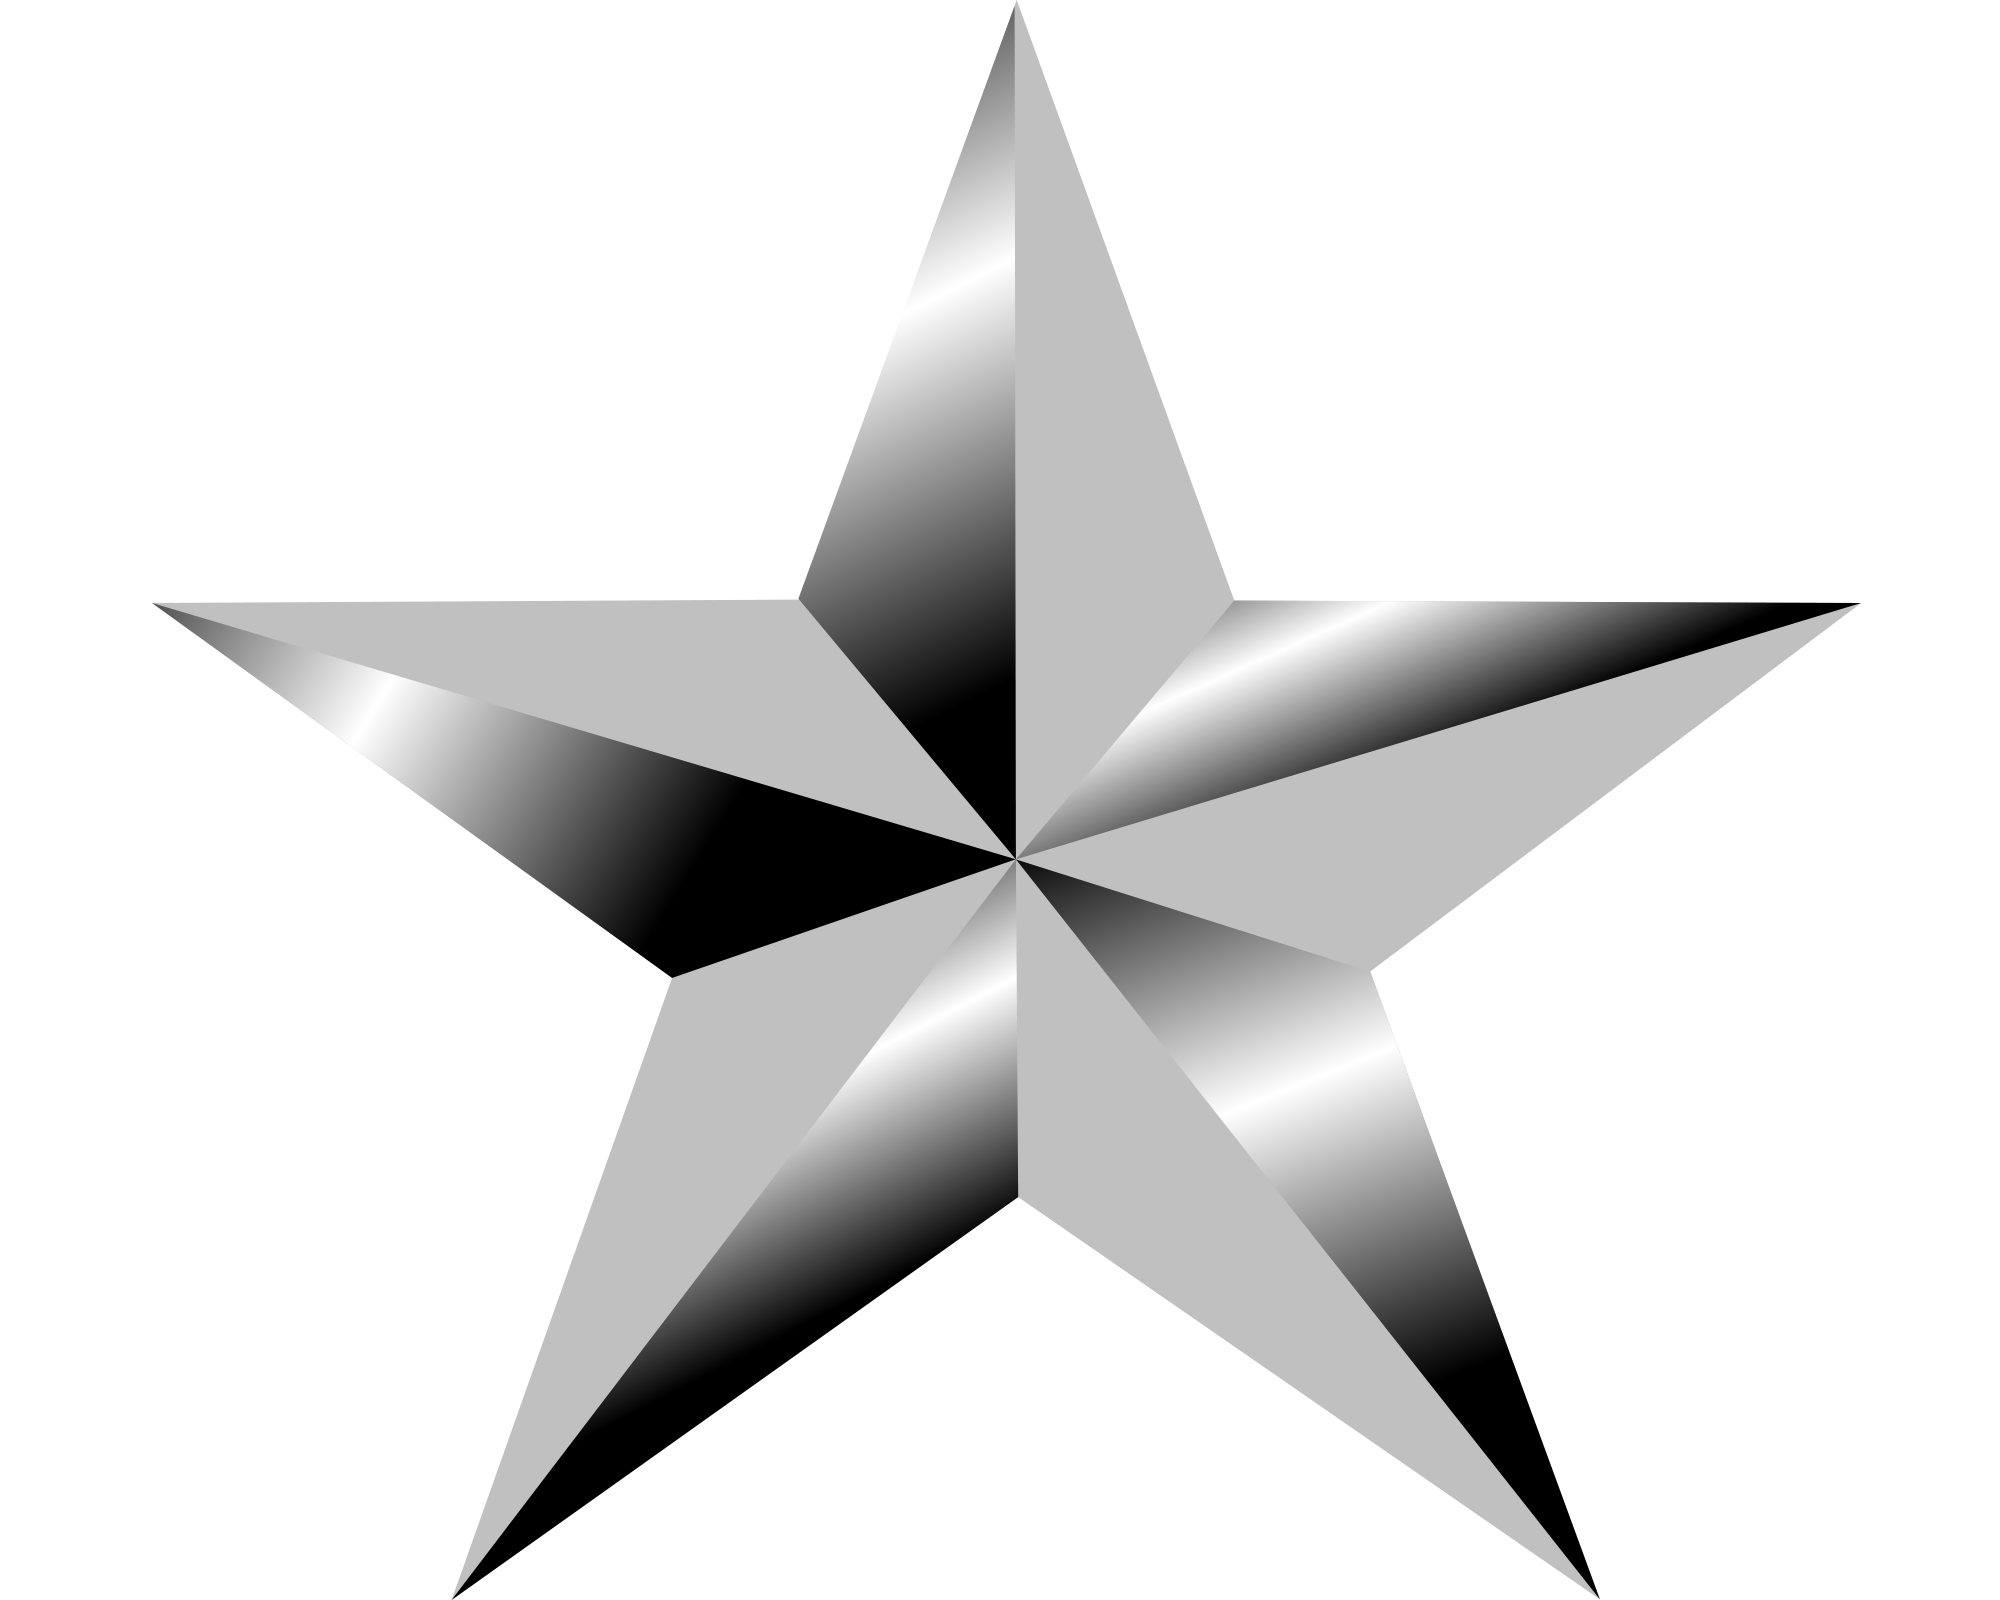 Star png image purepng. Color clipart silver